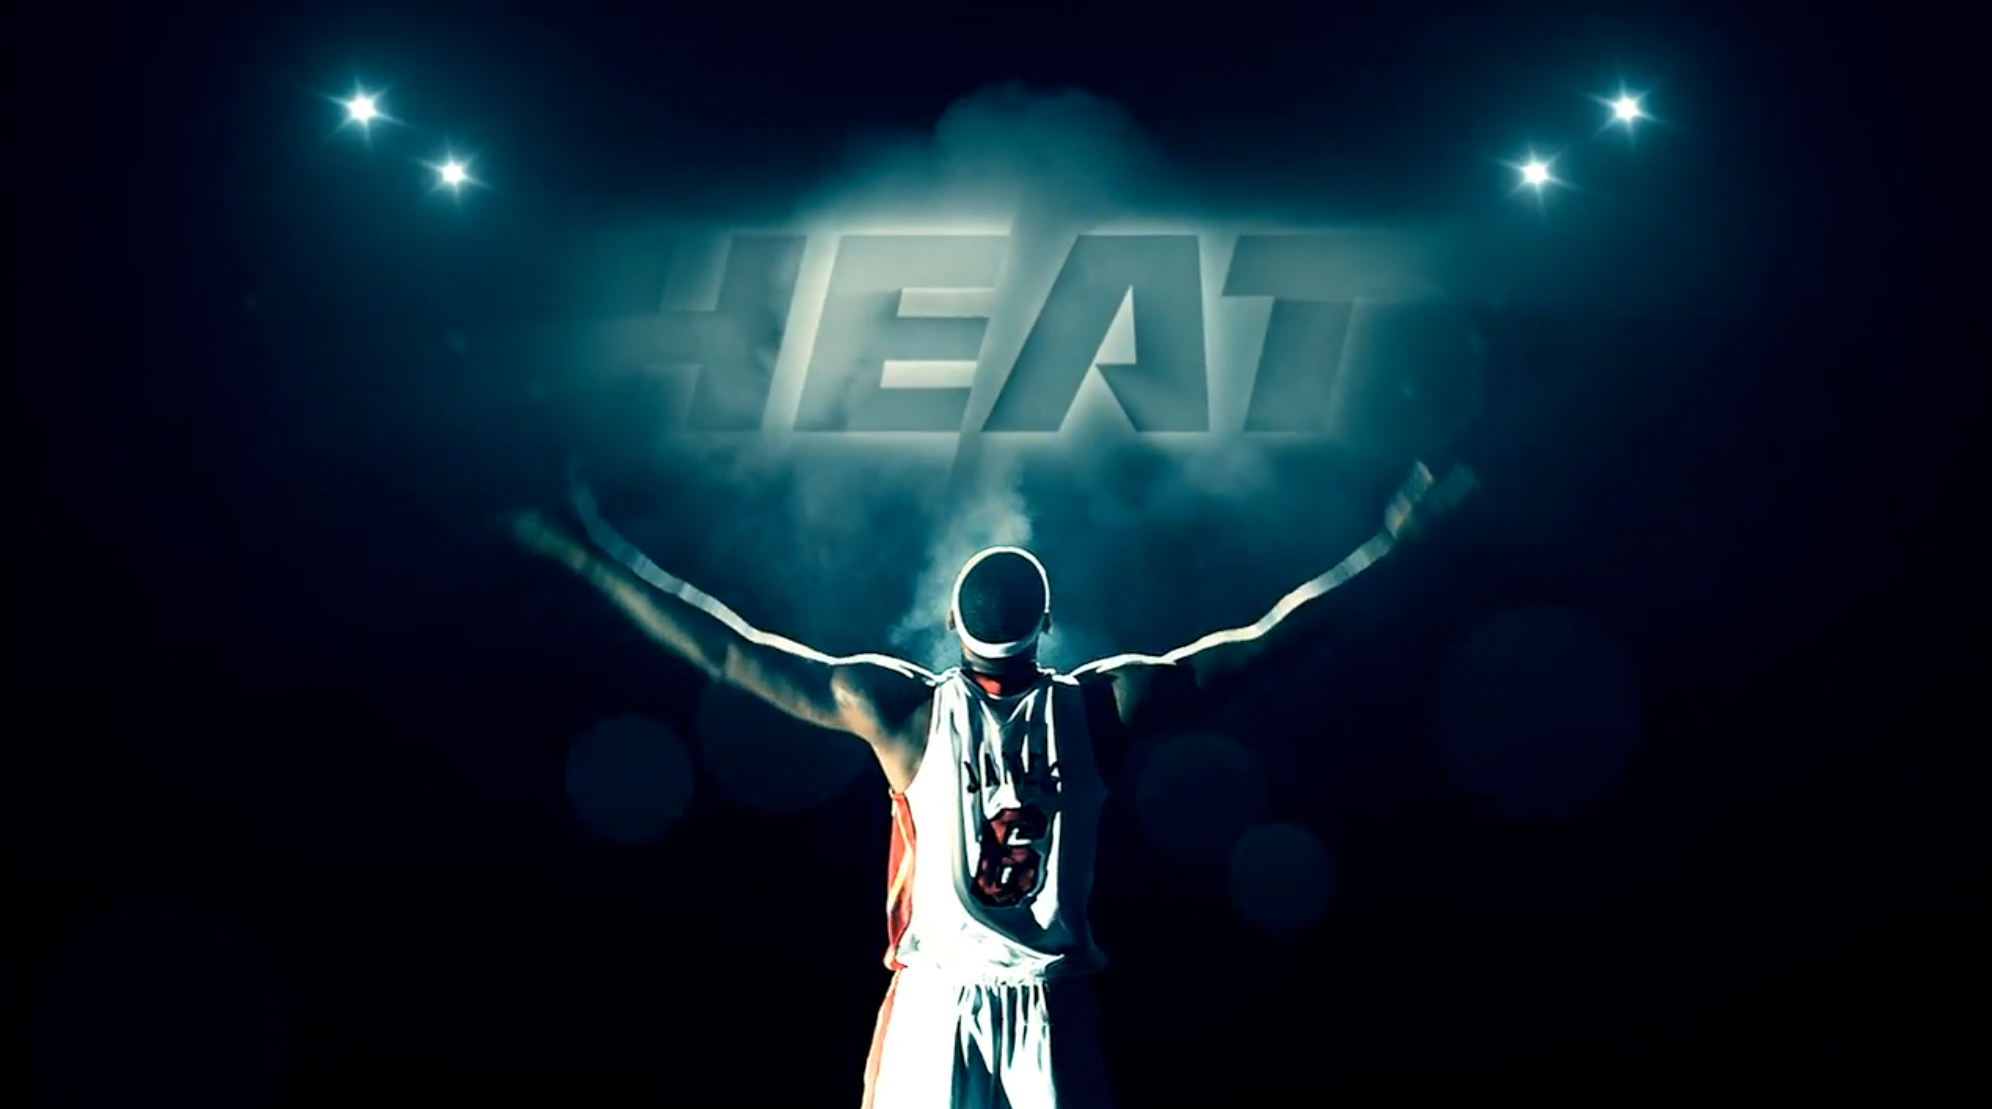 Miami Heat | Team Compilation